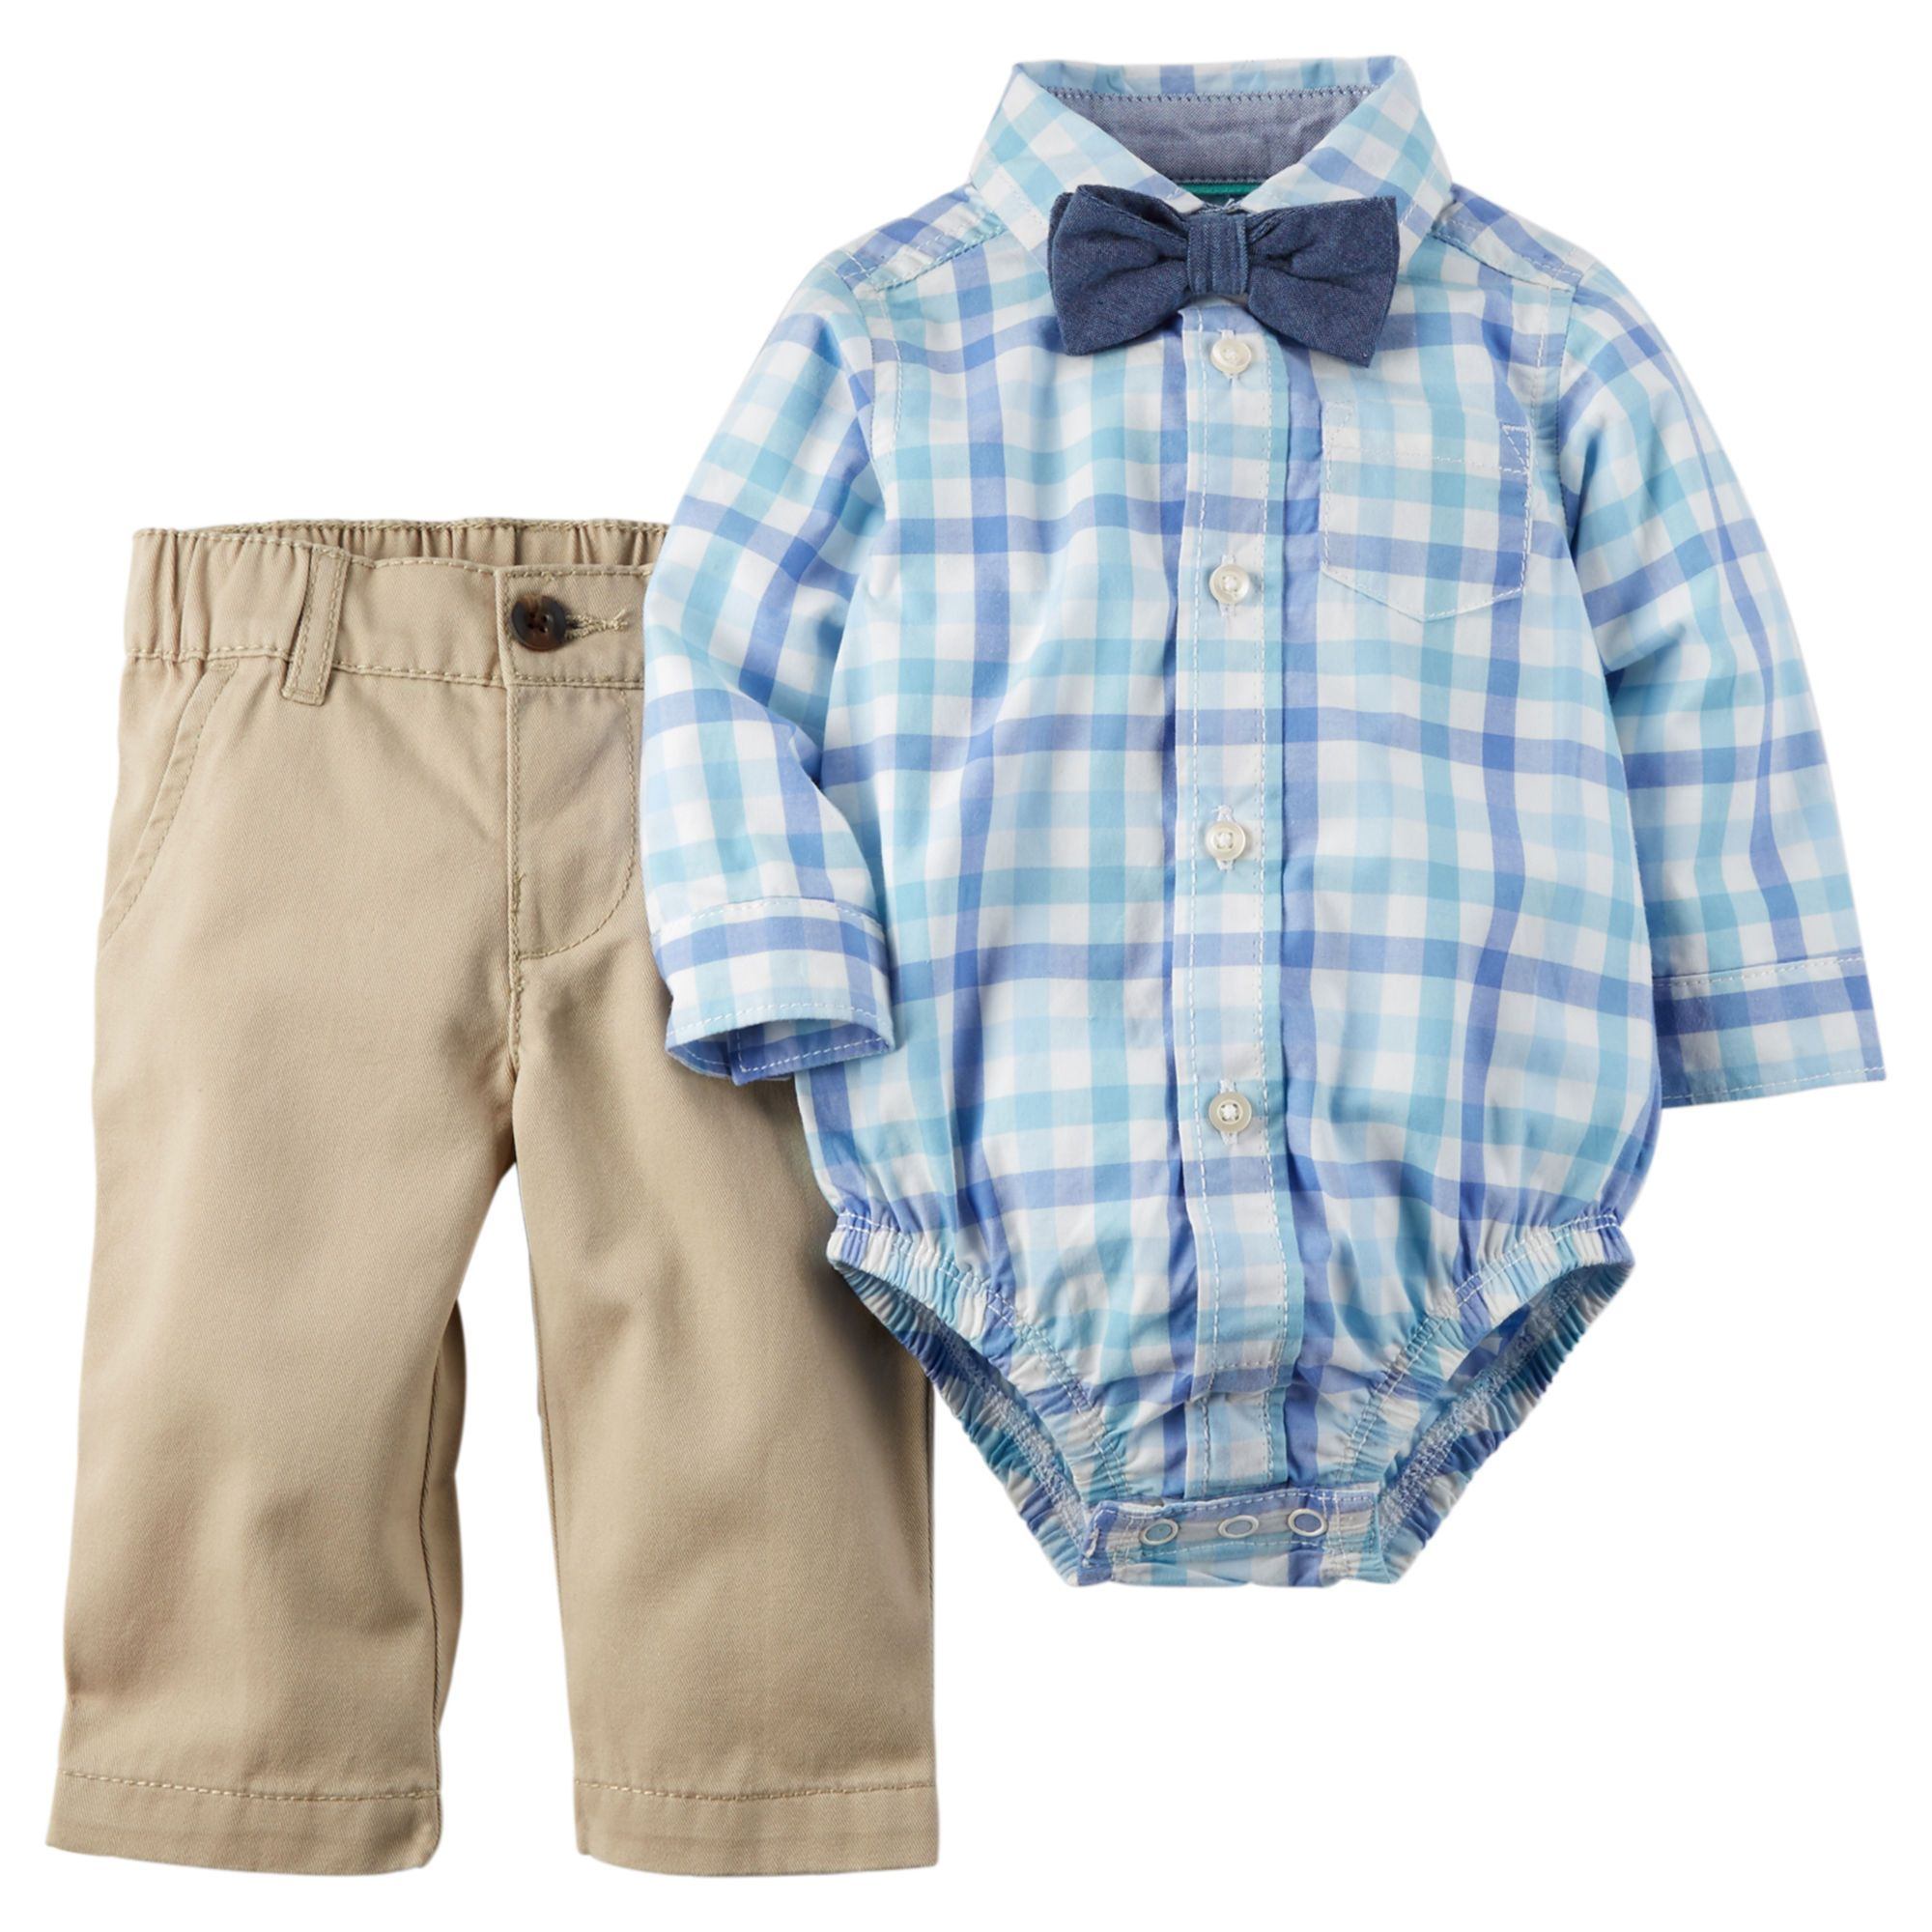 4813f1139 Bowties and baby boys! This 3-piece shirt & pant set comes with easy snap  button-front bodysuit, pull-on khakies & bowtie! Check out our easter shop  at ...